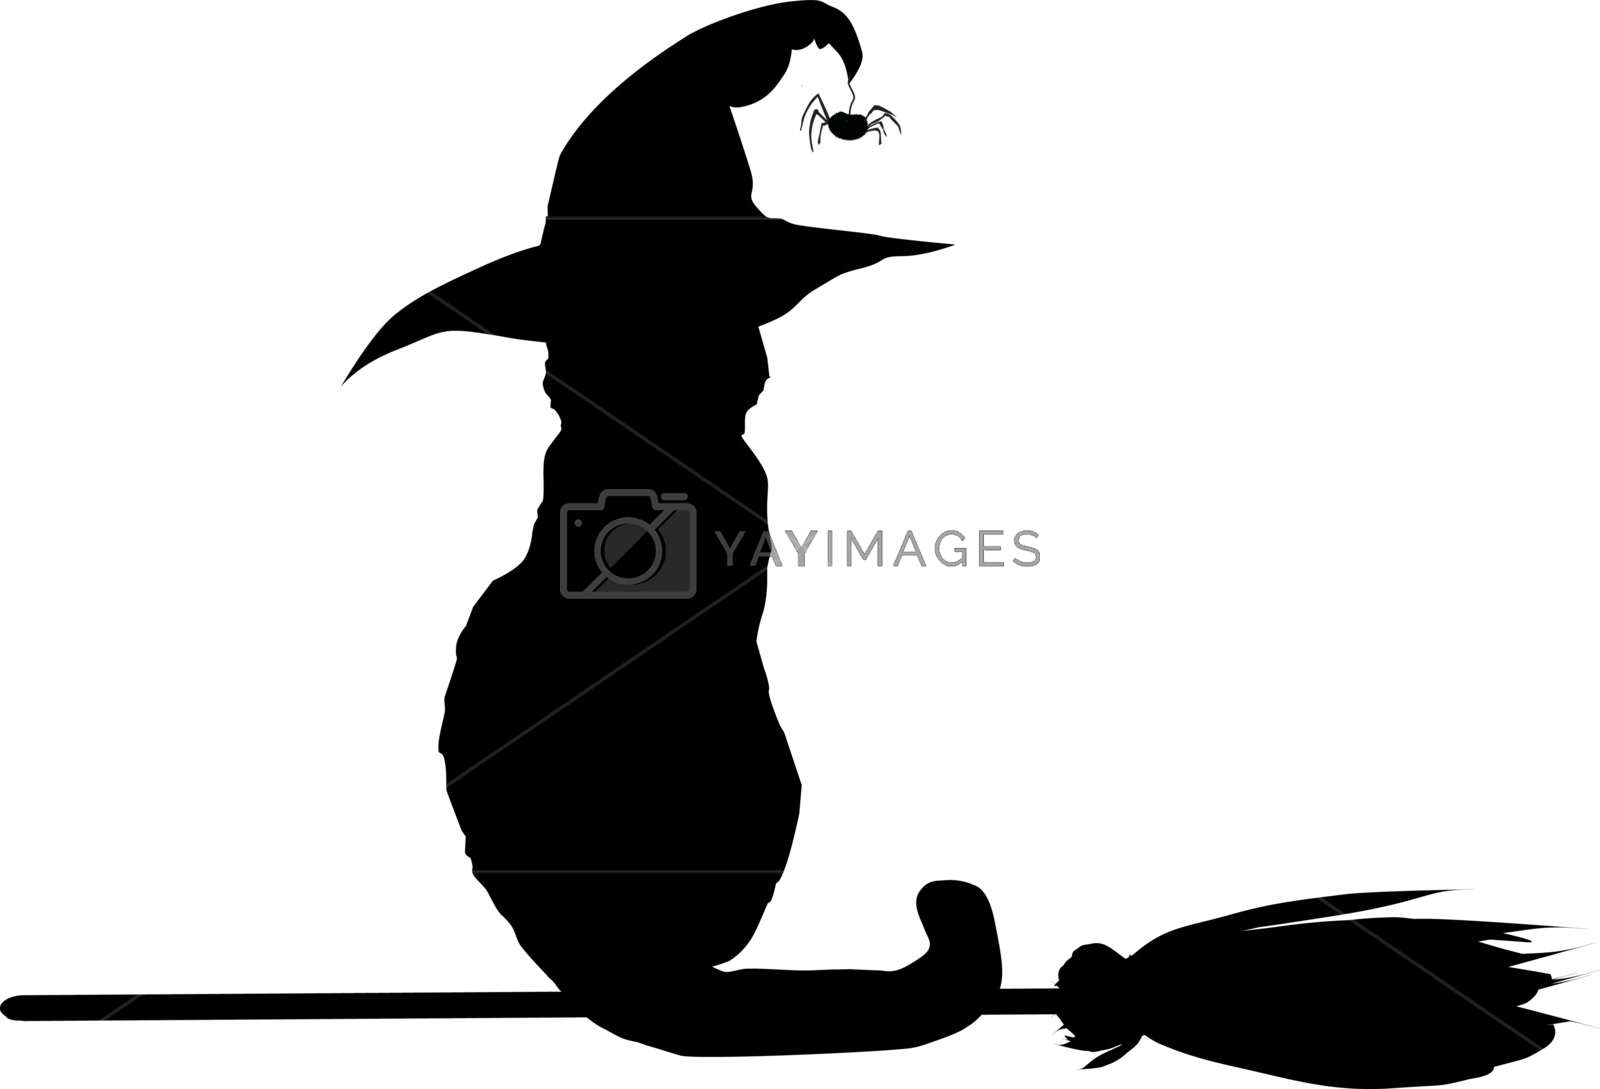 Silhouette of black cat in witch hat sitting on broomstick.